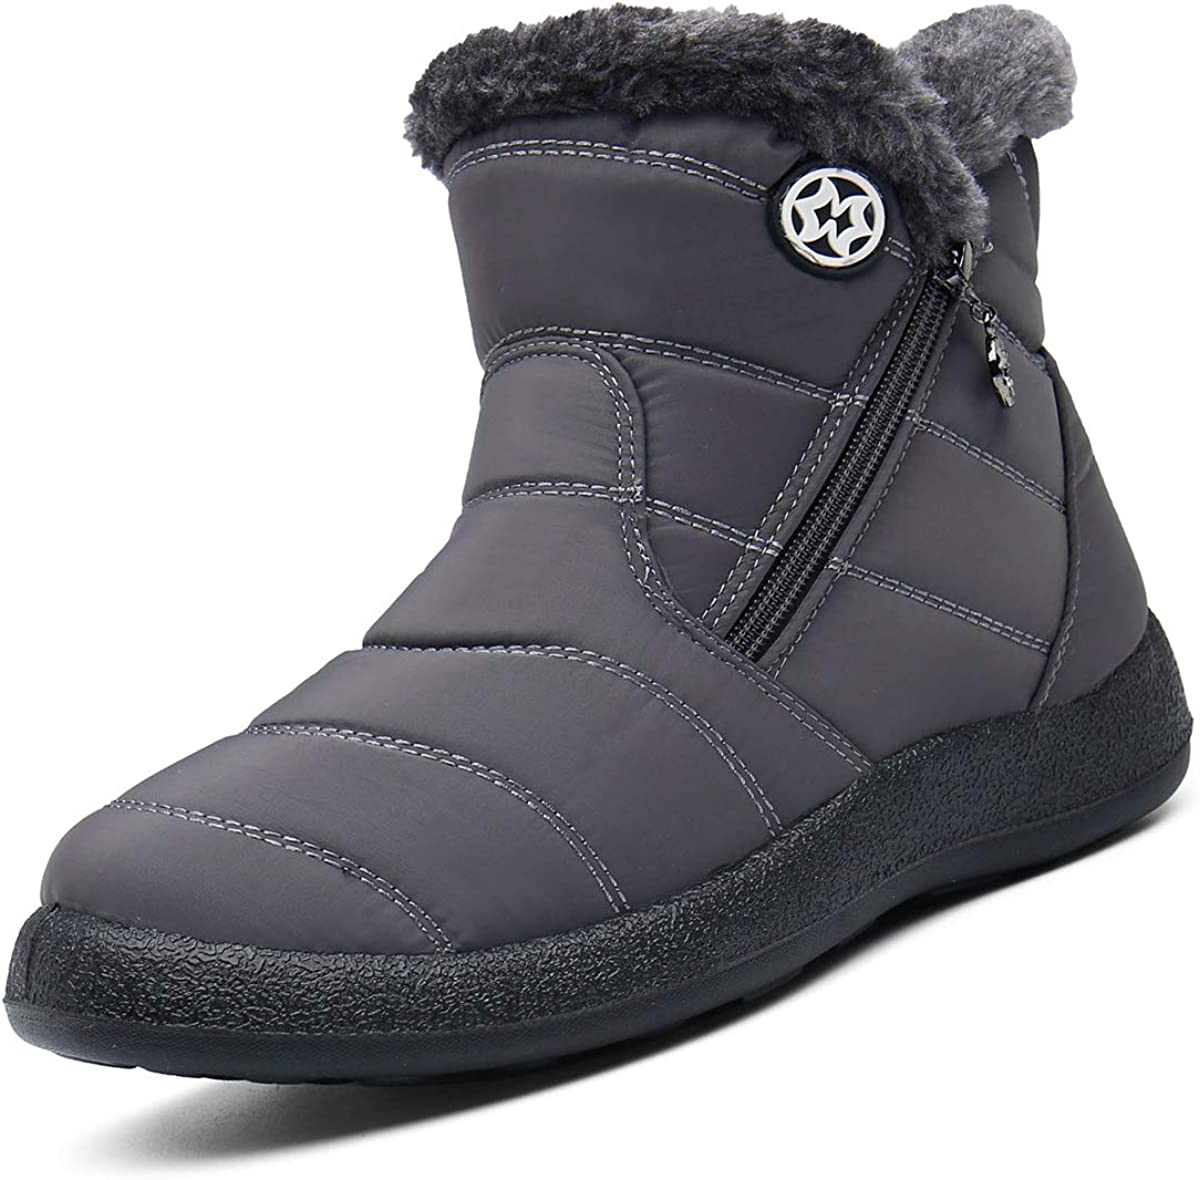 Eagsouni Snow Boots Womens Winter Now free Max 68% OFF shipping Fur Li Warm Ladies Ankle